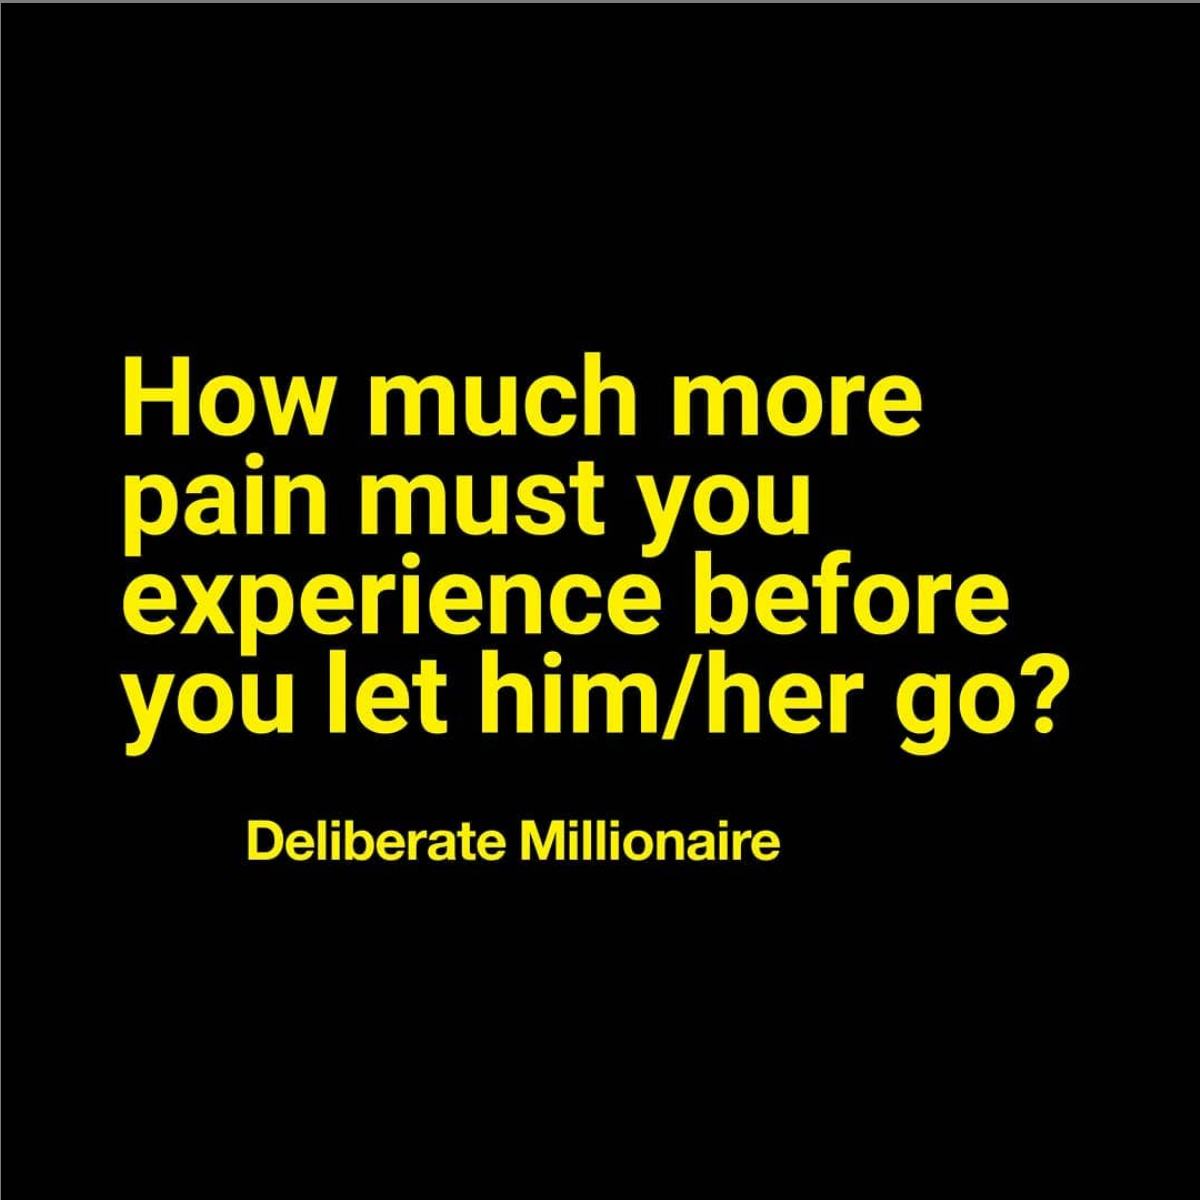 How Much More Pain Do You Have To Experience Before You Let Him/Her Go?